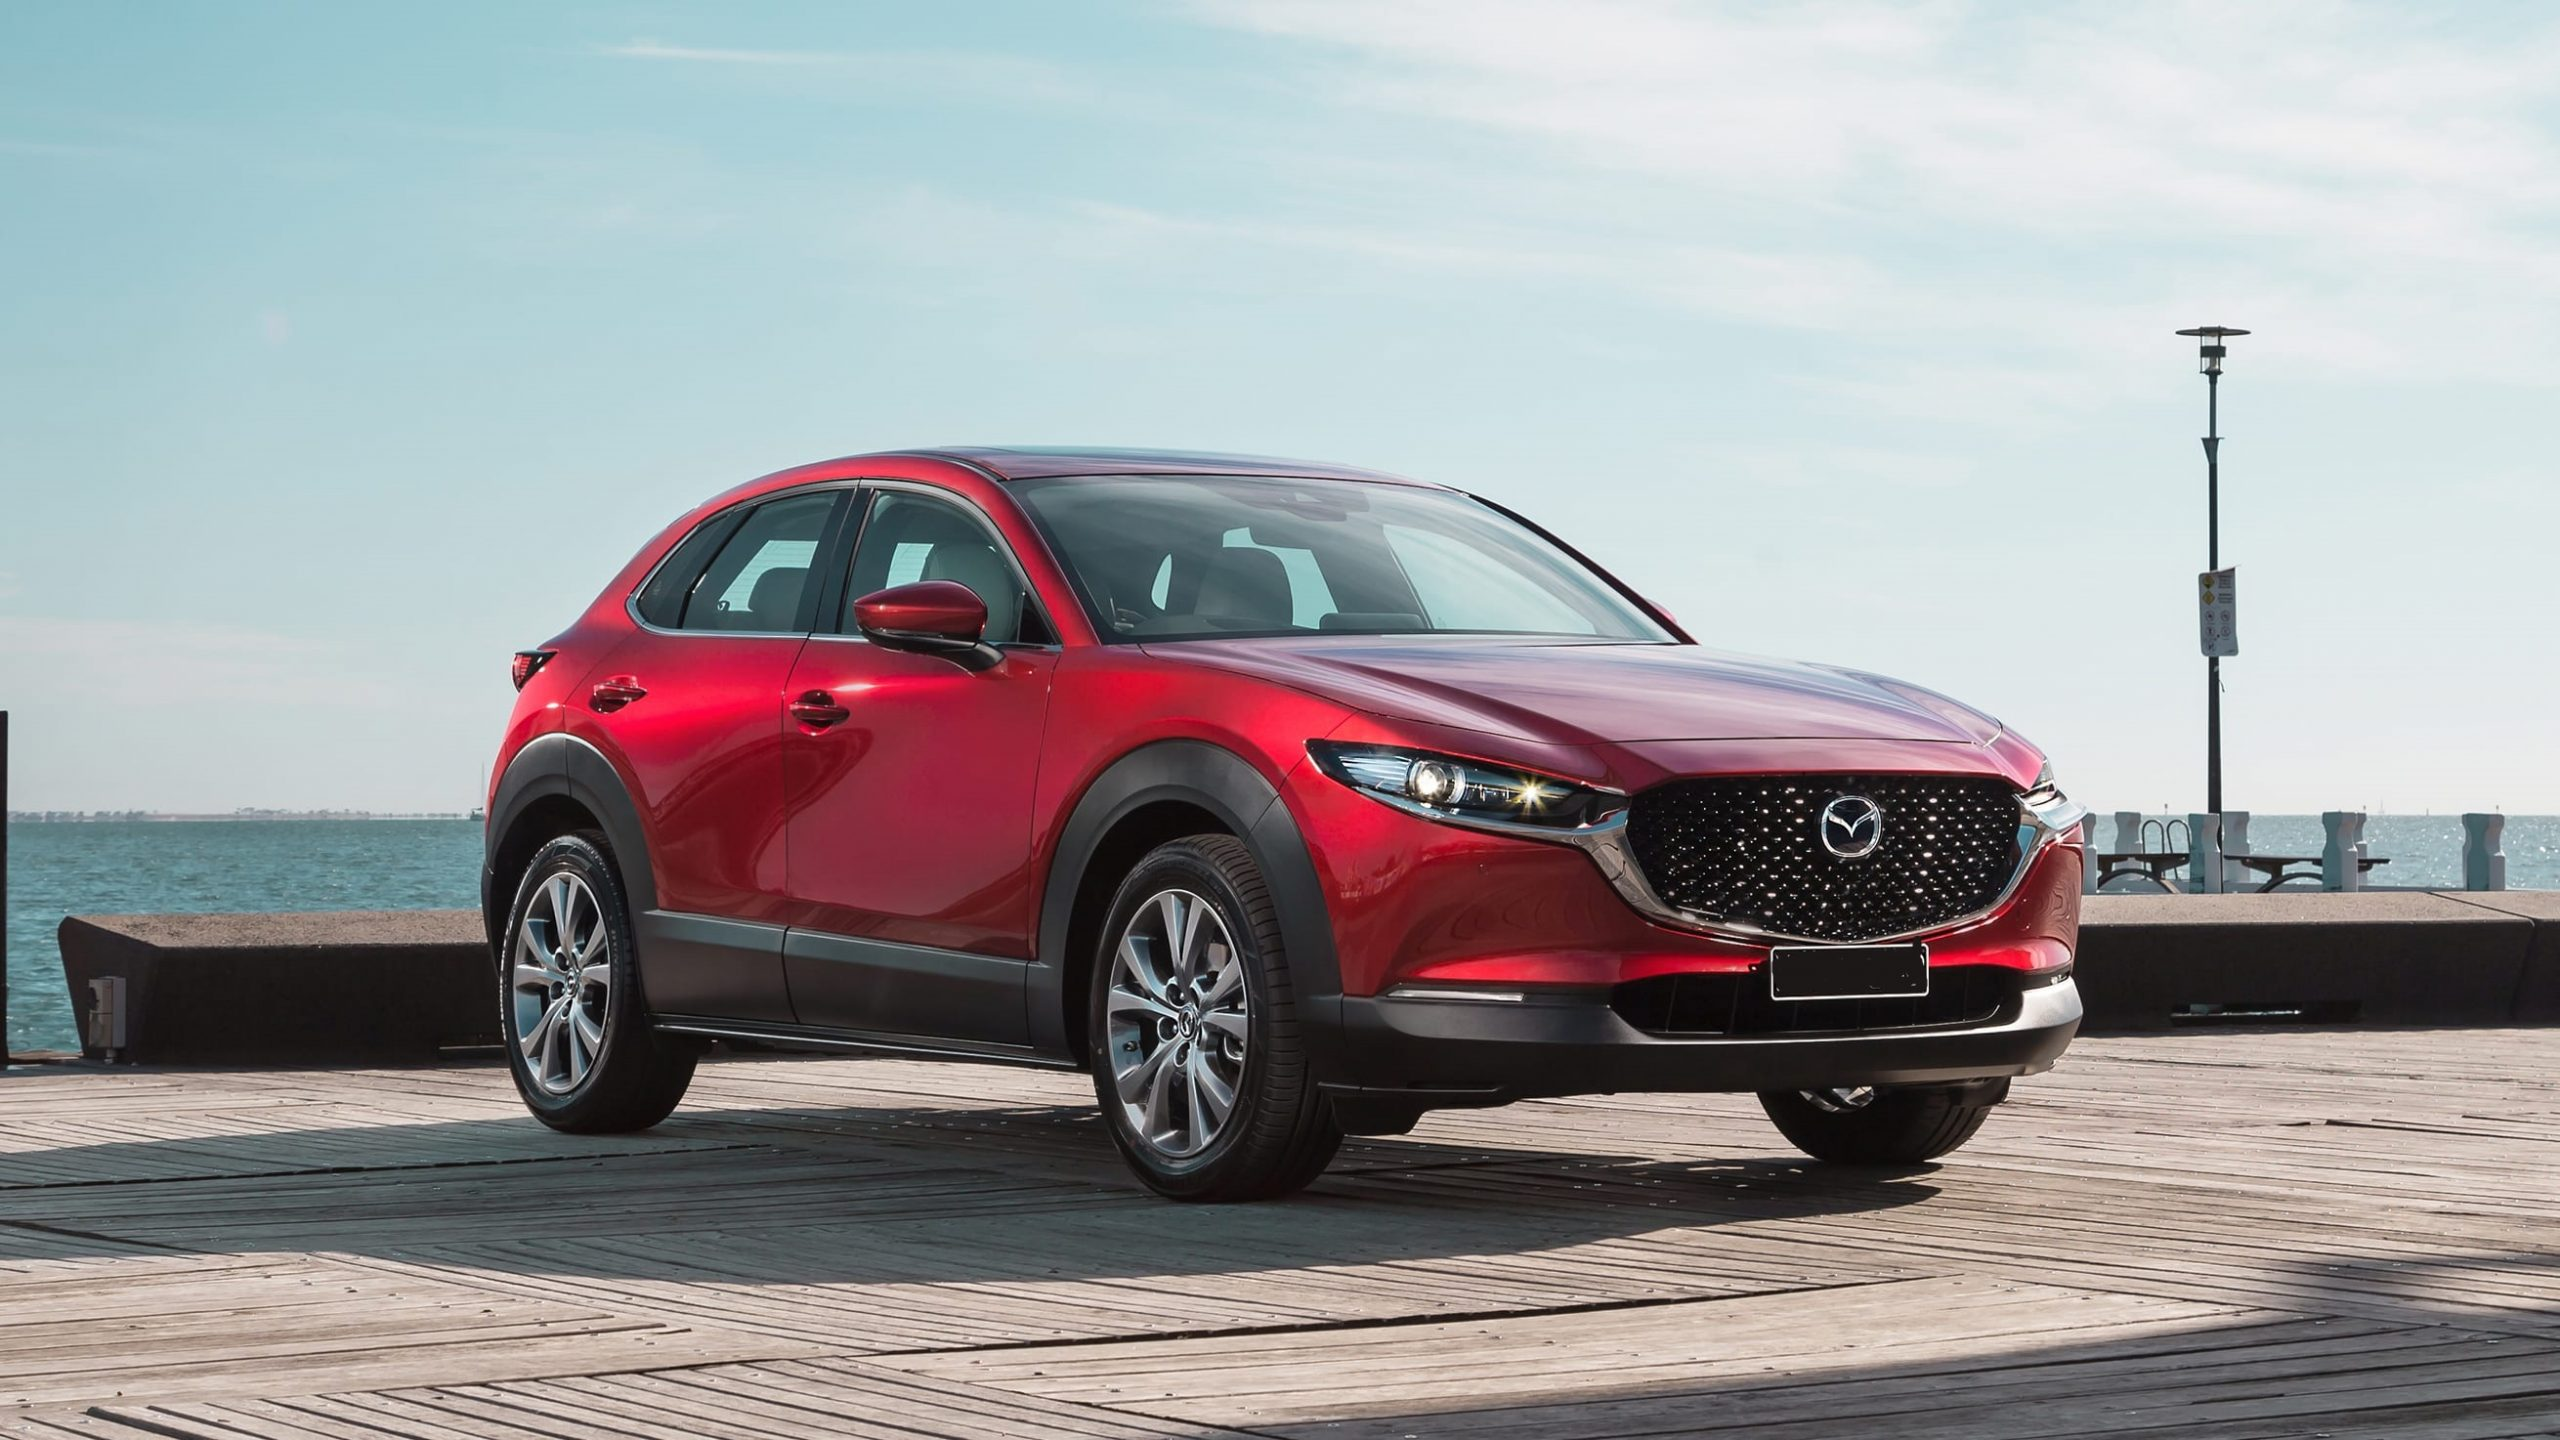 2021 Mazda CX-3 Redesign, Facelift and Hybrid Engine ...